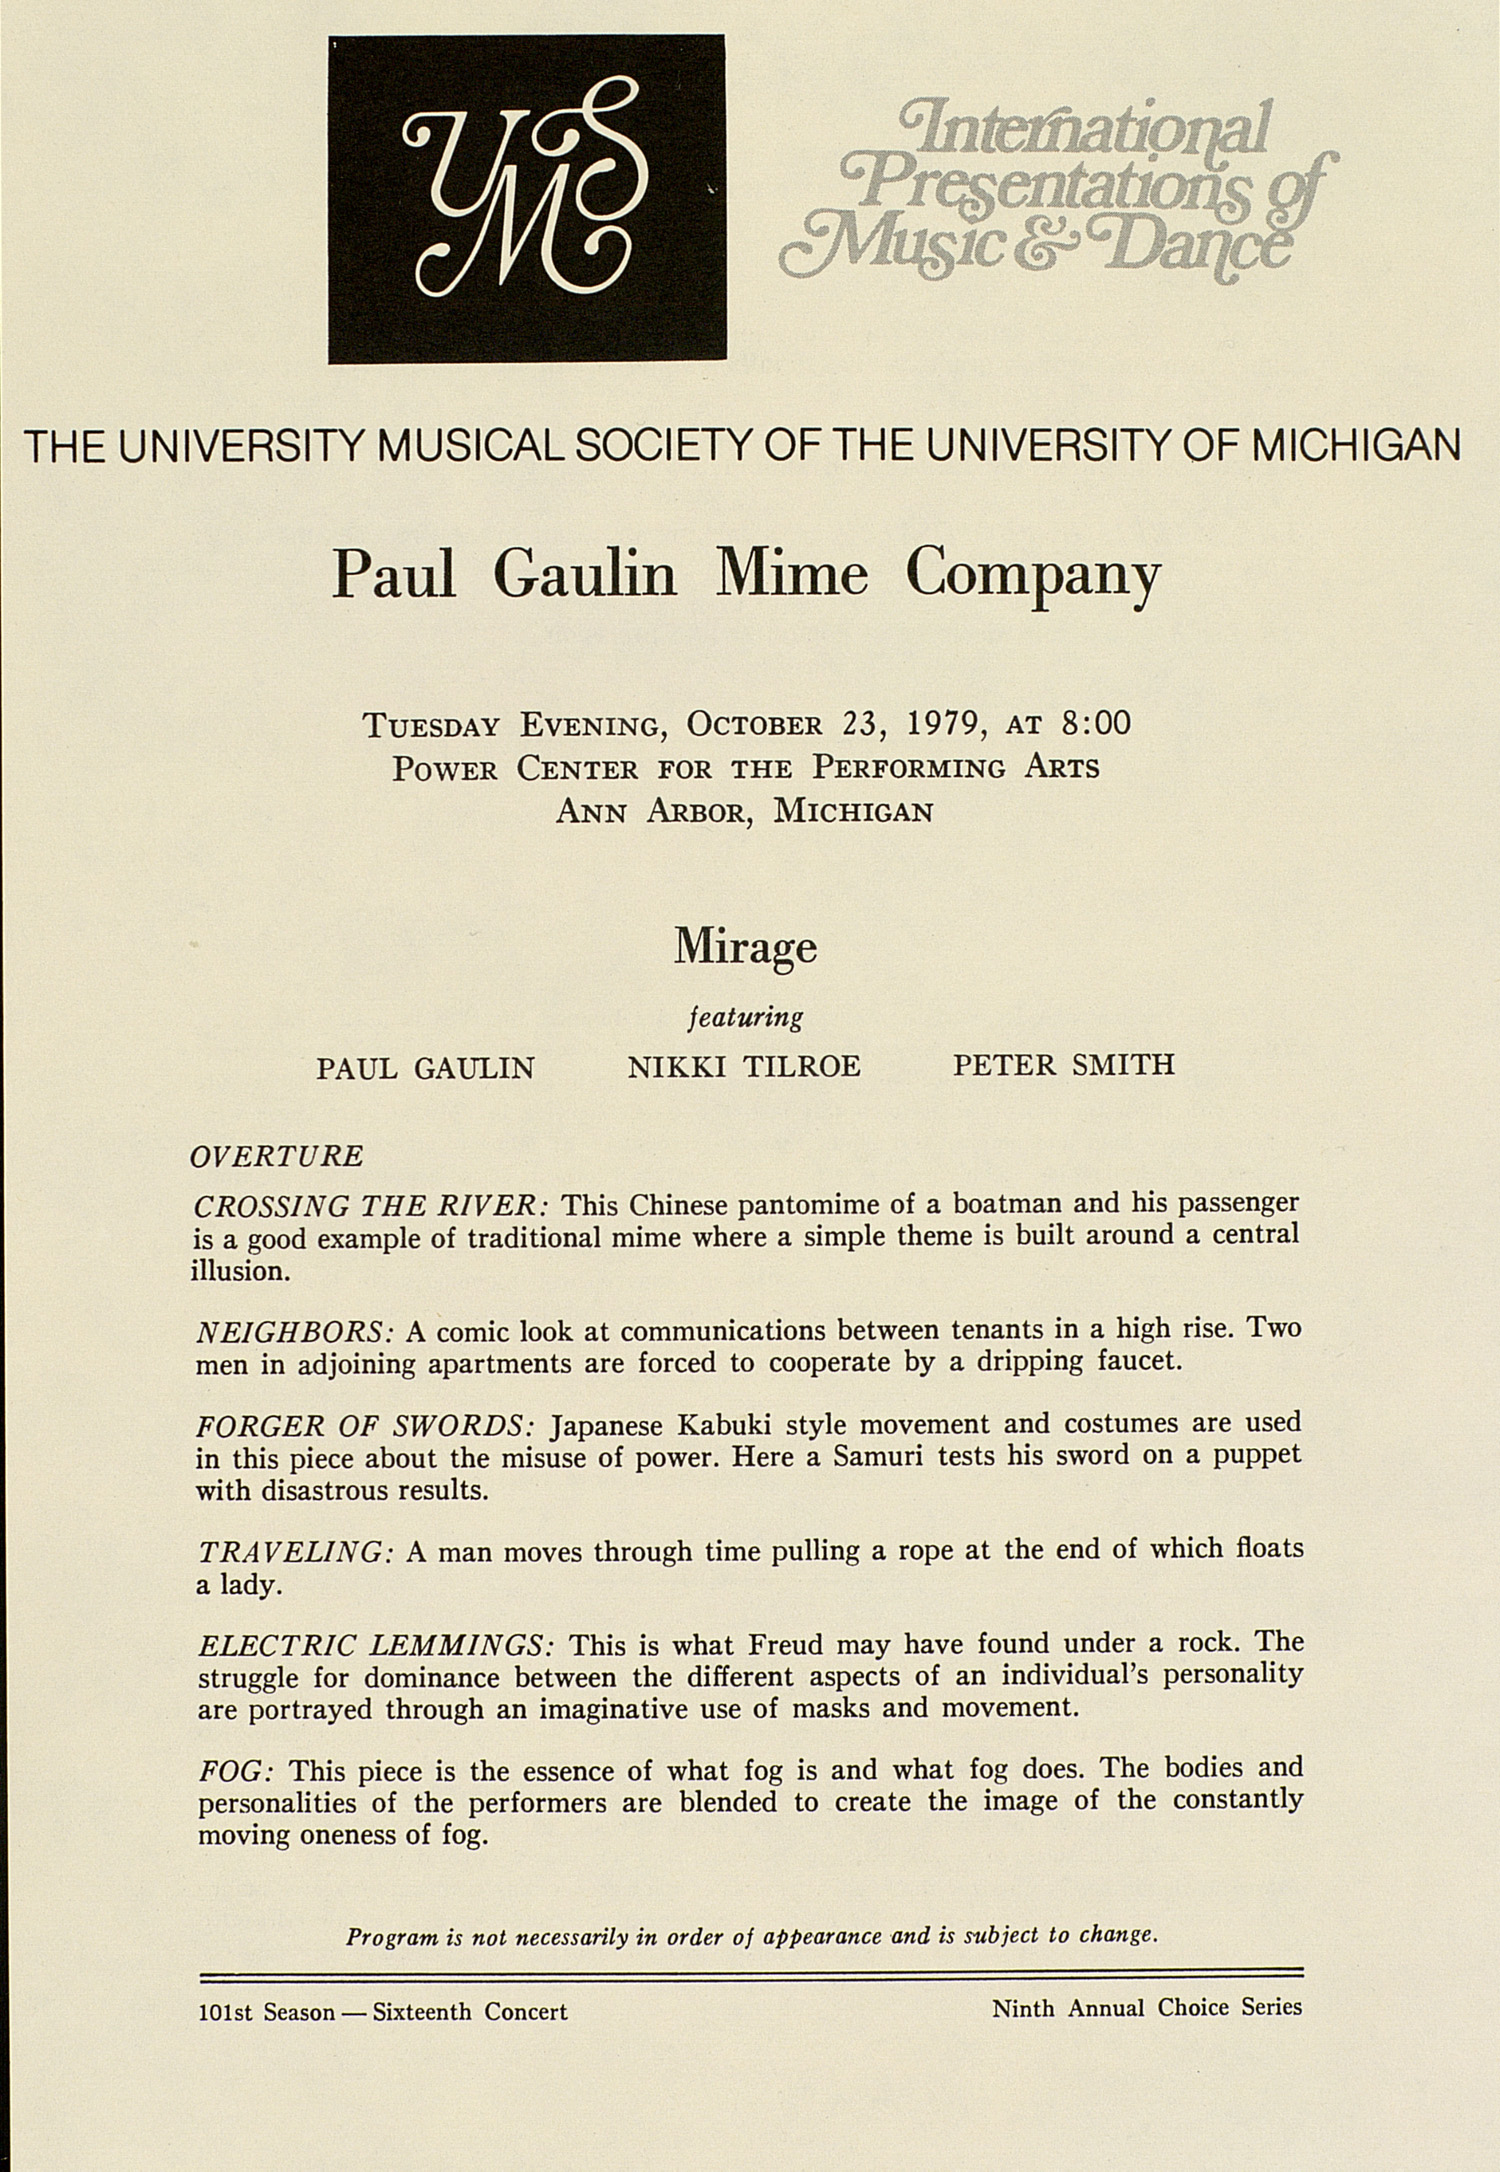 UMS Concert Program, October 23, 1979: International Presentations Of Music & Dance -- Paul Gaulin Mime Company image